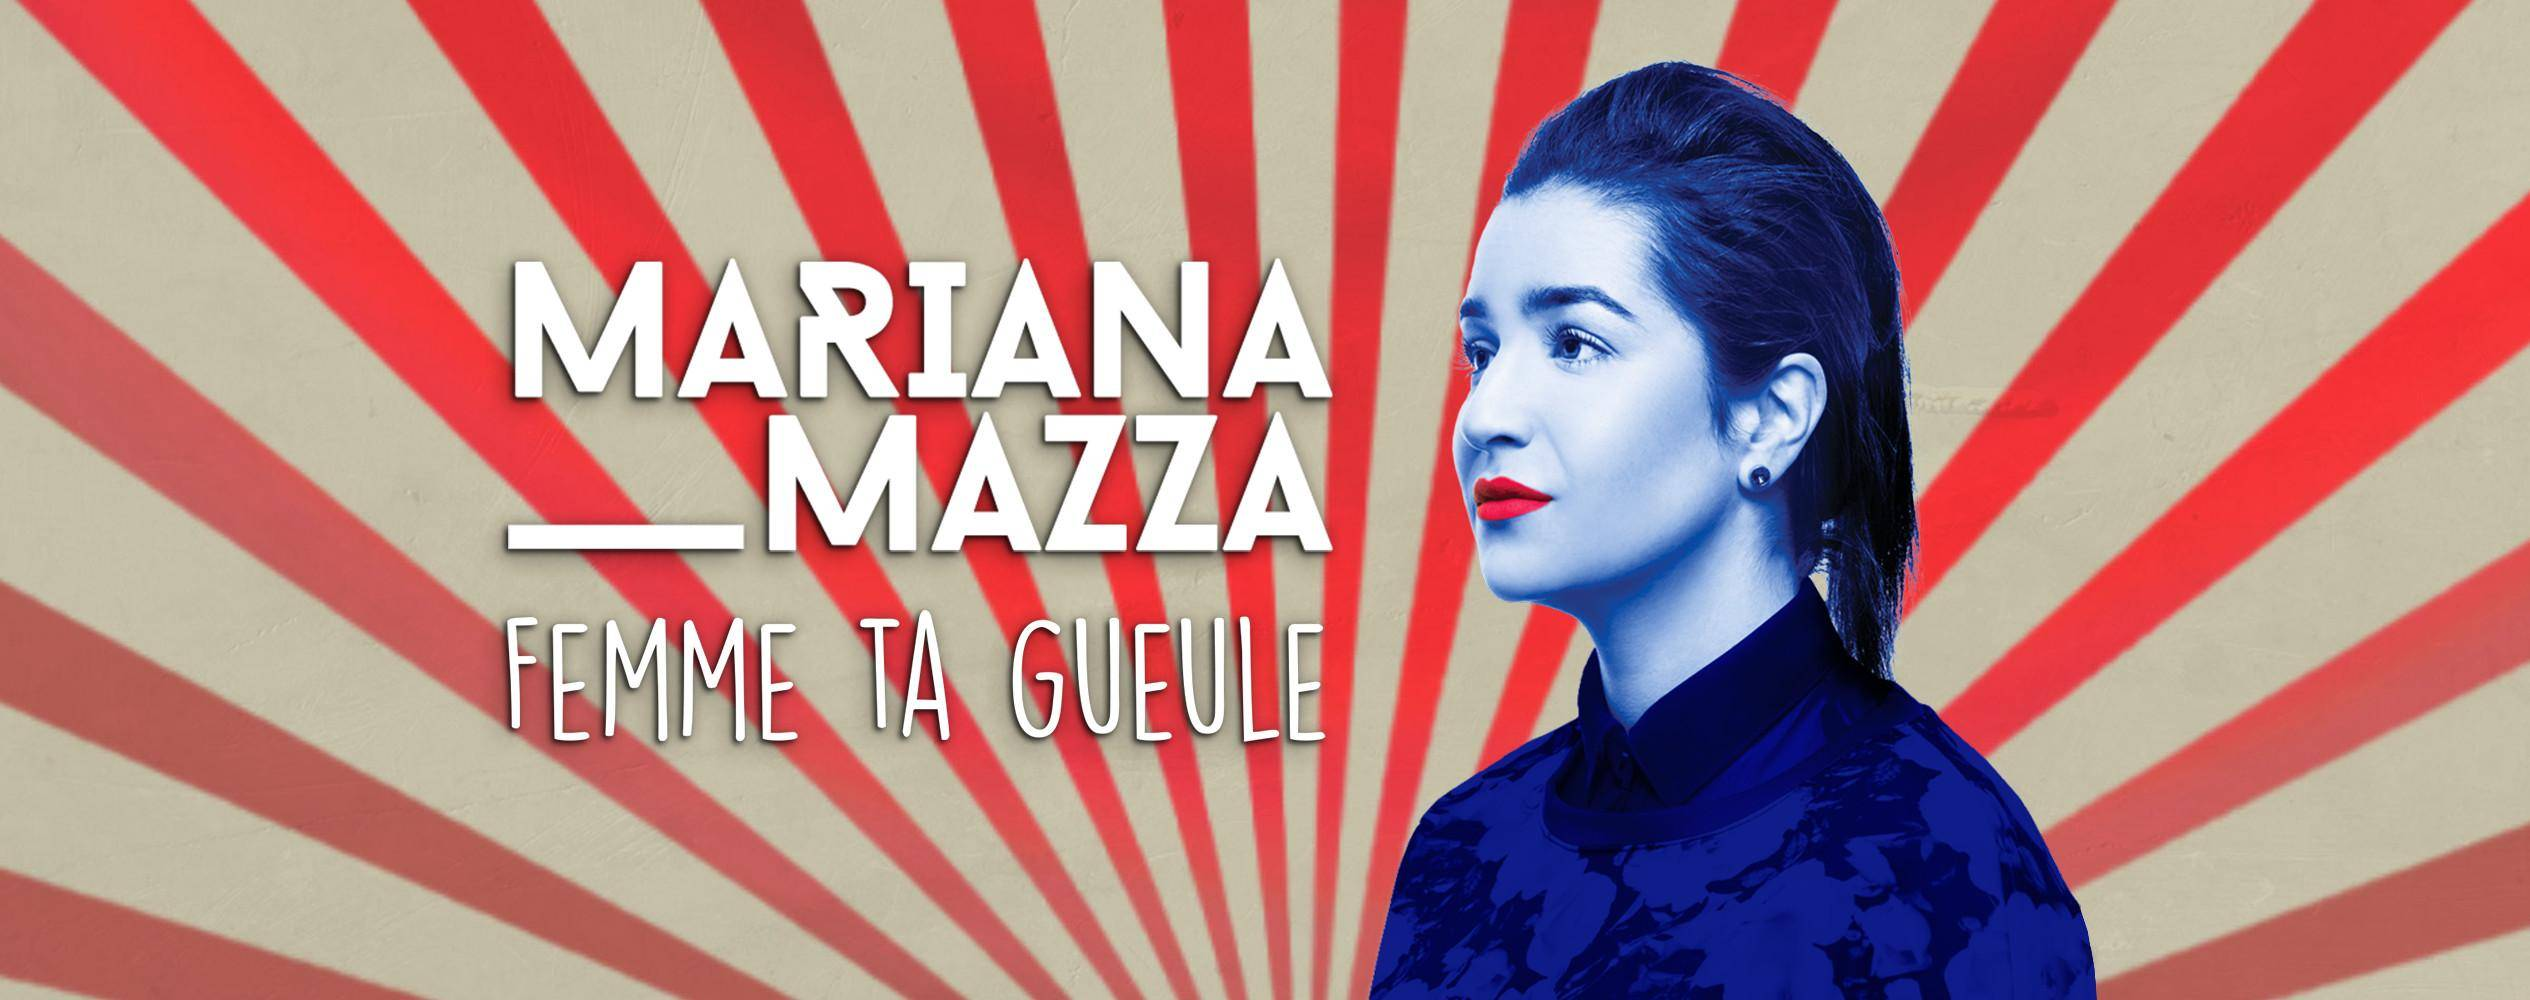 Mariana Mazza au Centre des arts Juliette-Lassonde !